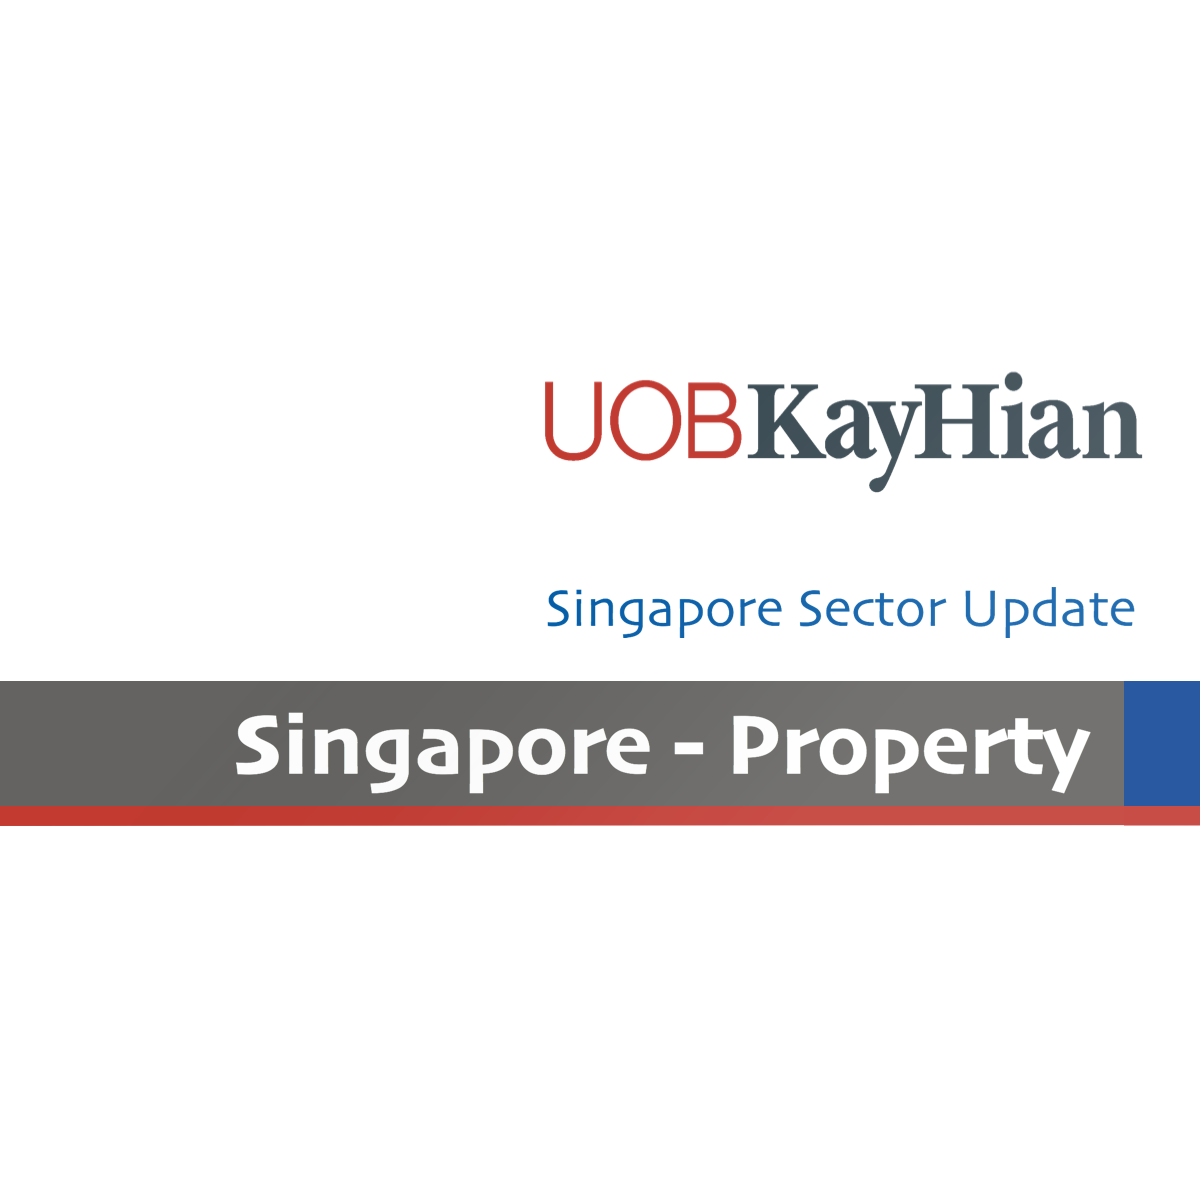 Property − Singapore - UOB Kay Hian 2017-09-18: The Next Wave